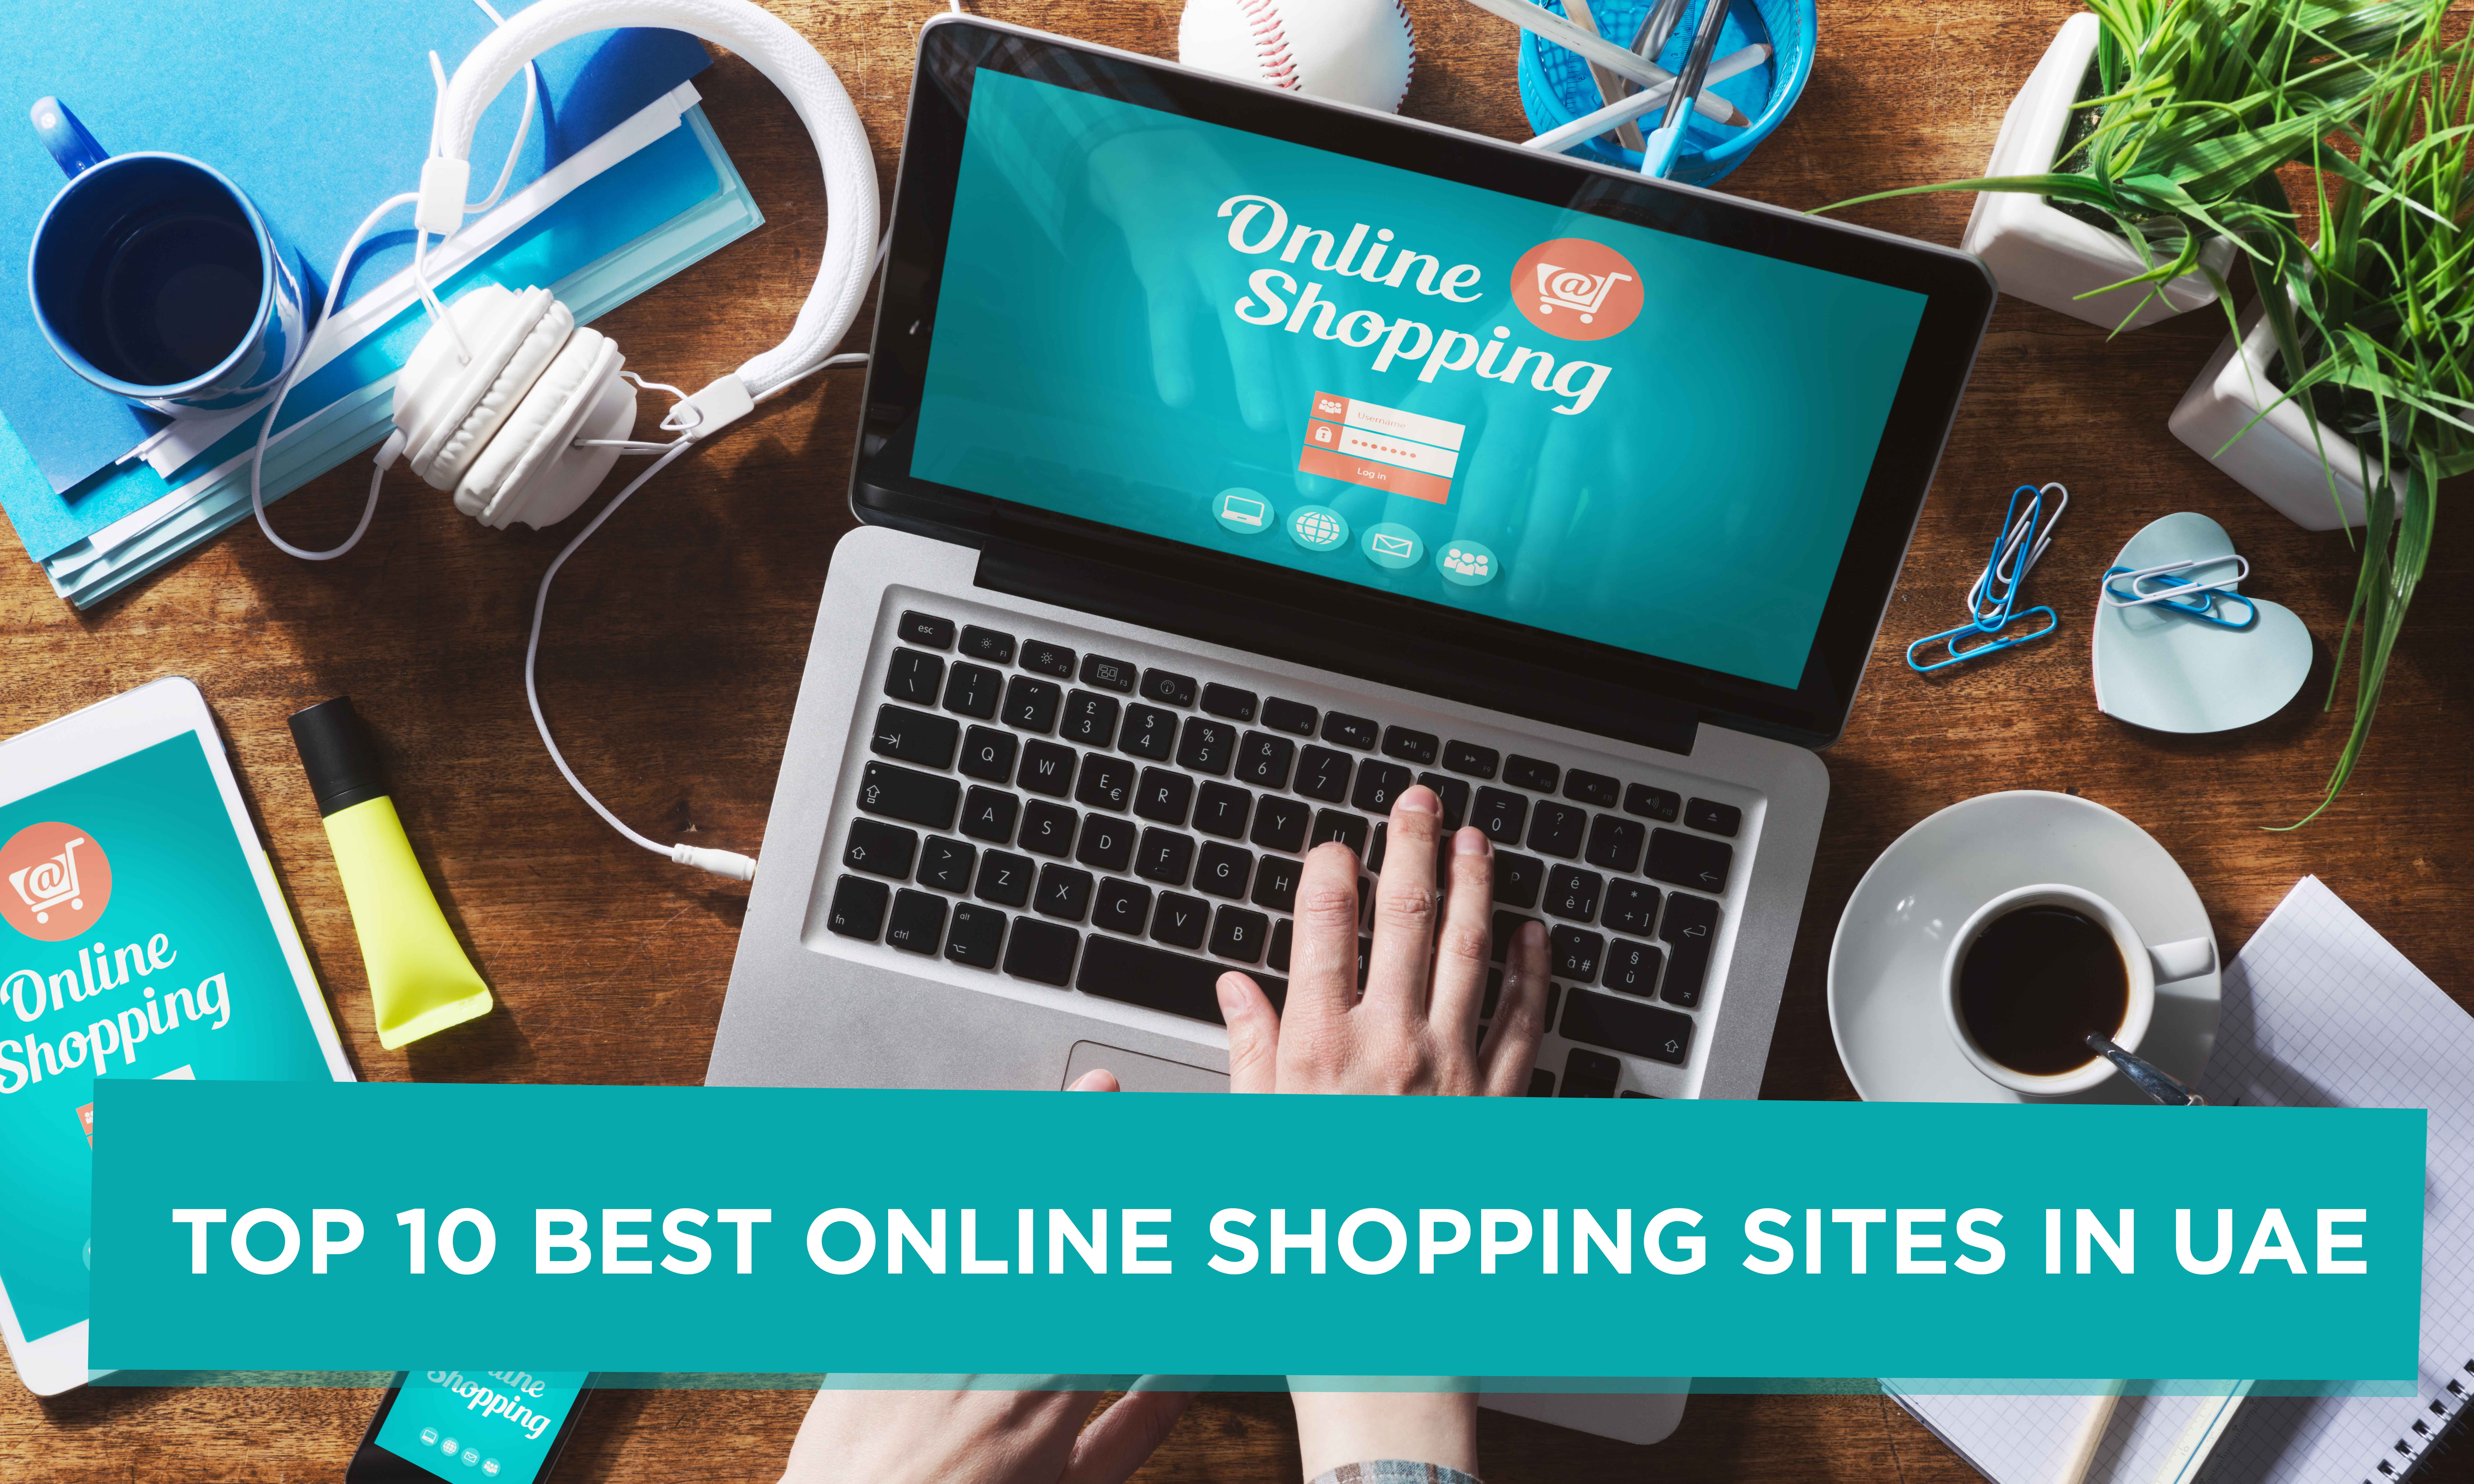 RISING ECOMMERCE-UAE'S TOP TEN ONLINE SHOPPING WEBSITES